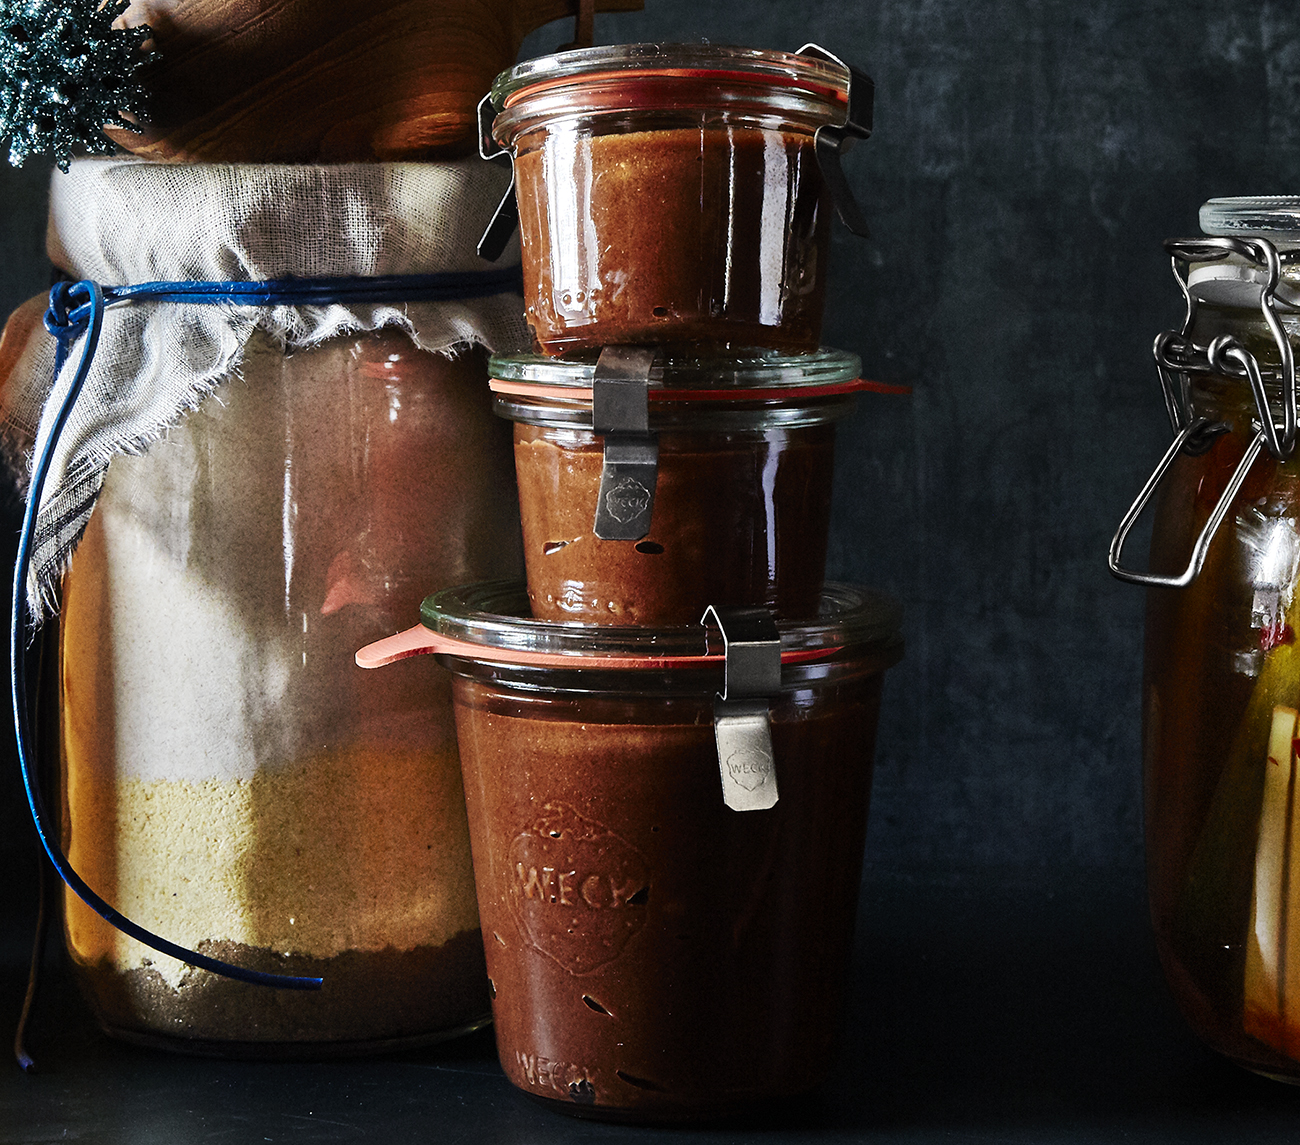 Food gifts: Salted Chocolate Caramel Spread